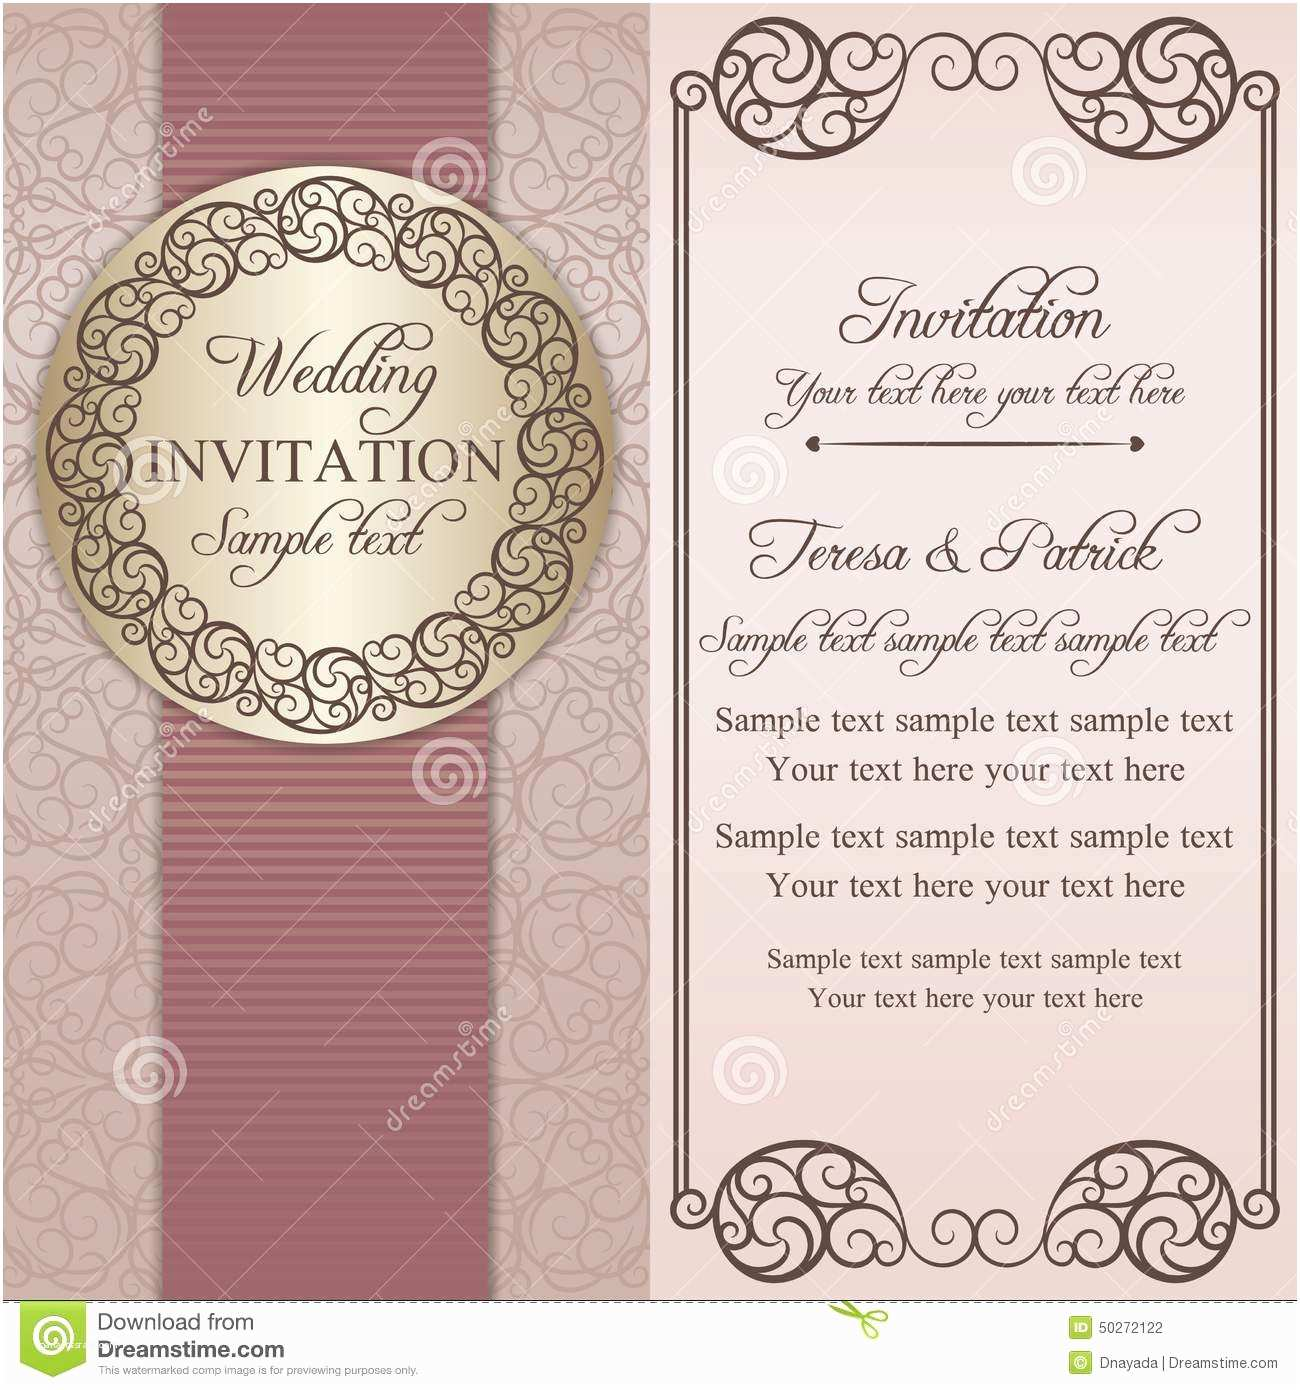 Time Frame for Wedding Invitations Baroque Wedding Invitation Pink and Beige Stock